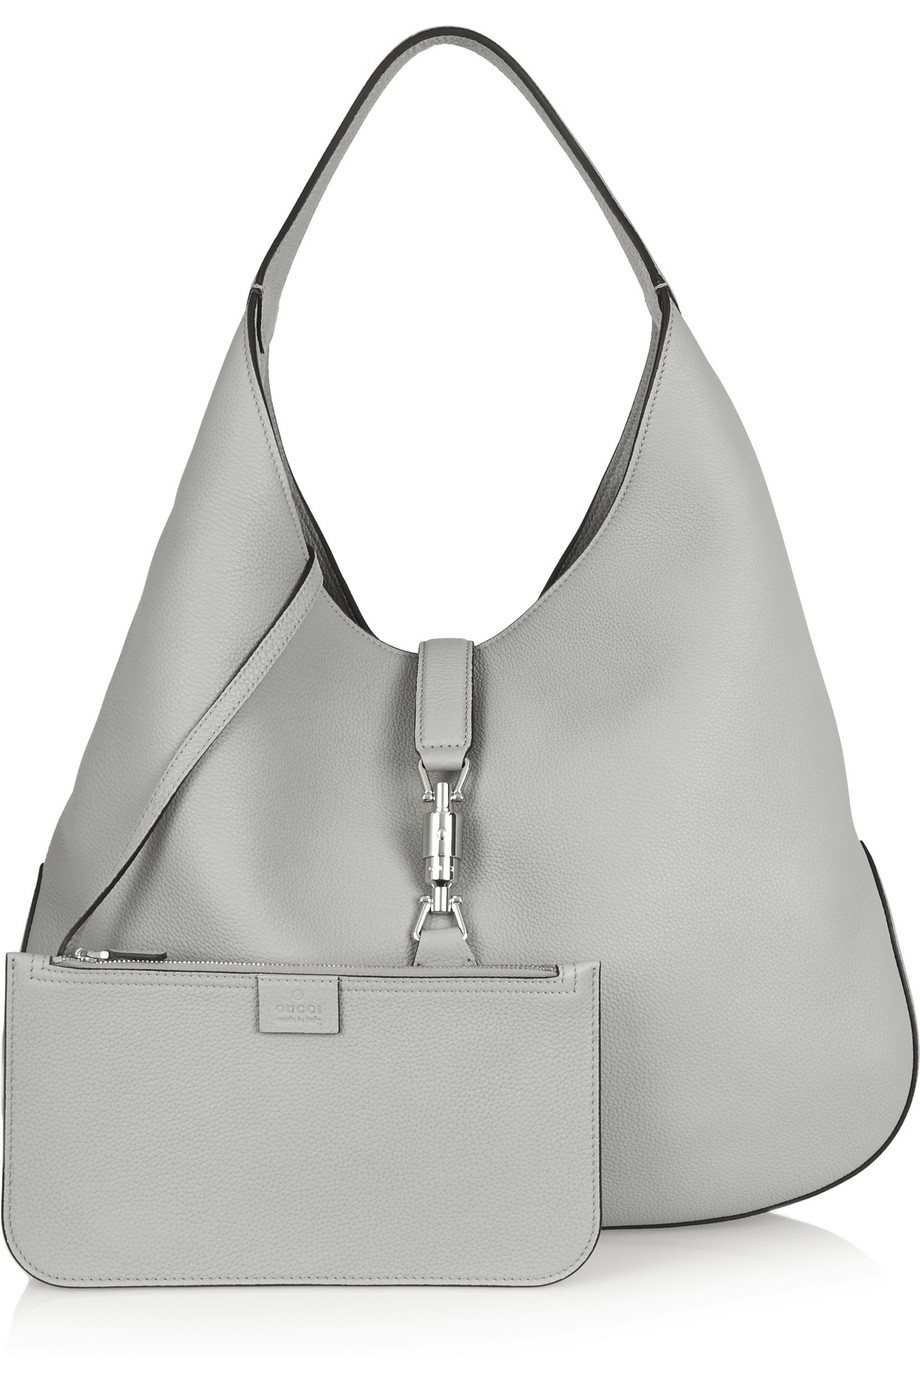 Lyst - Gucci Jackie Soft Hobo Textured-leather Shoulder Bag in Gray 6530642f6d3dd